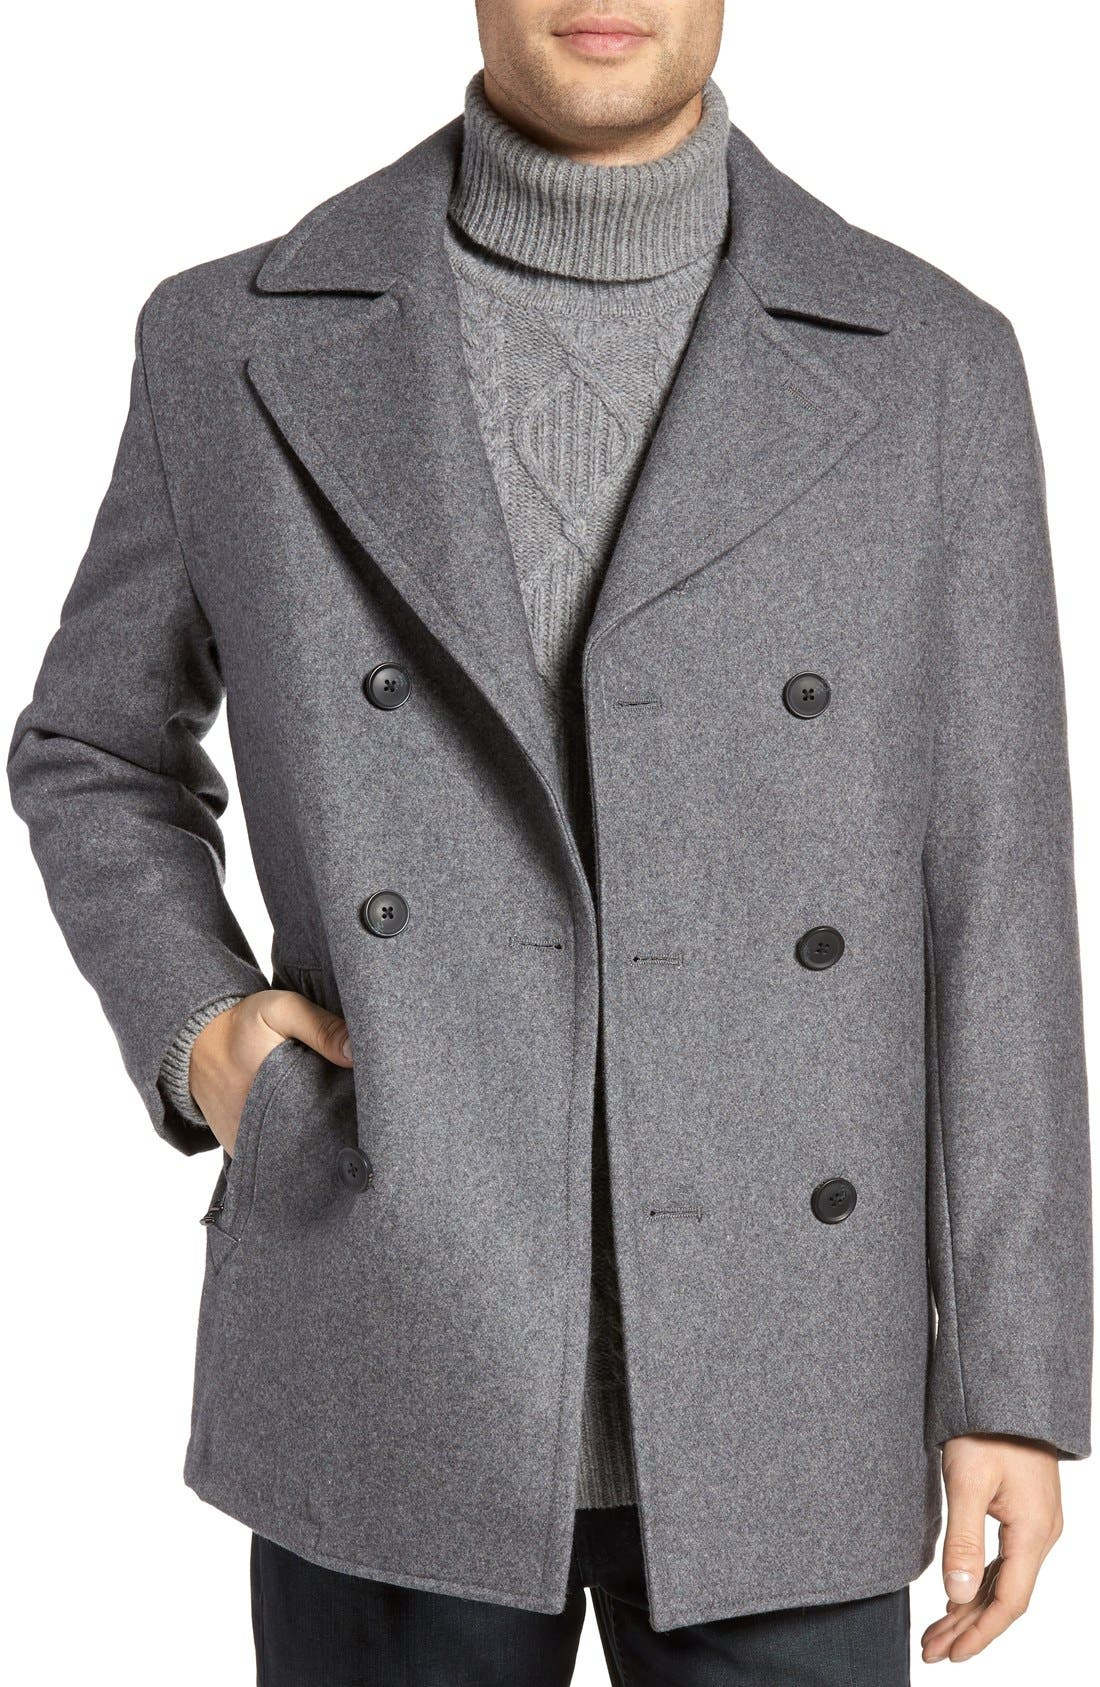 Wool Blend Double Breasted Peacoat,                             Main thumbnail 8, color,